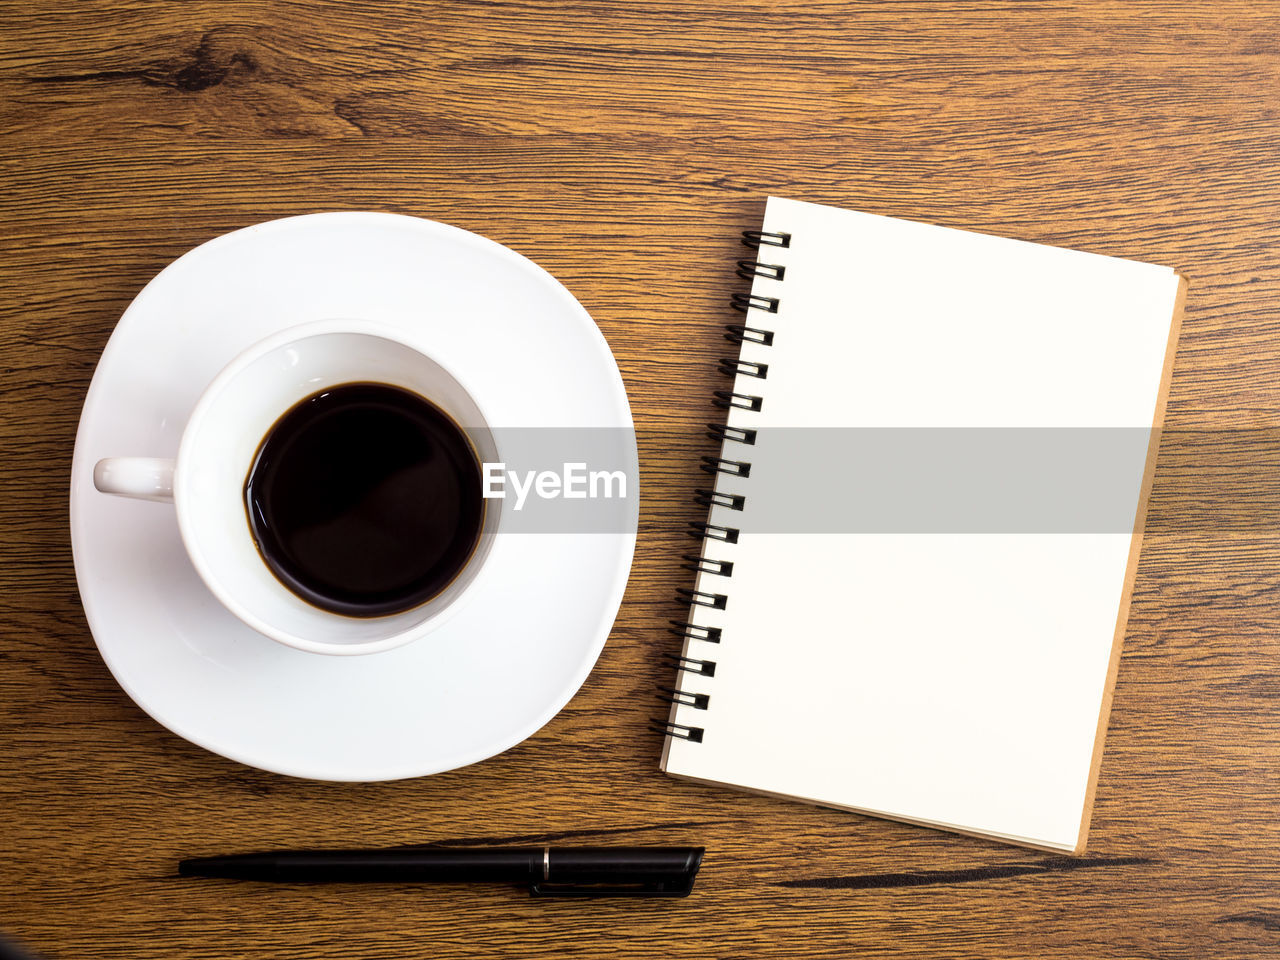 table, drink, coffee - drink, coffee, refreshment, pen, directly above, food and drink, spiral notebook, indoors, coffee cup, still life, cup, publication, mug, wood - material, black coffee, high angle view, book, no people, saucer, crockery, note pad, non-alcoholic beverage, blank